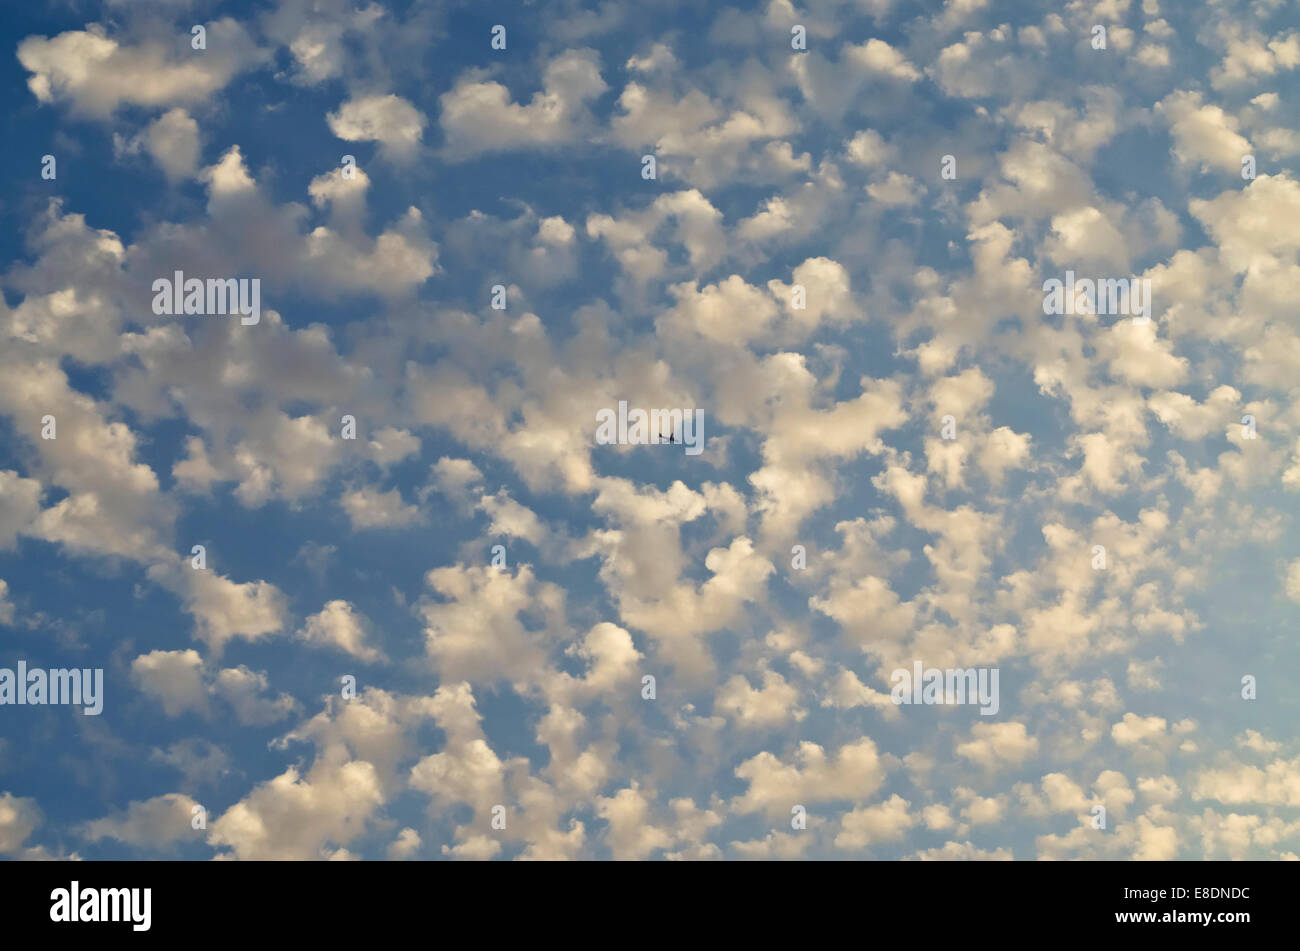 blue-sky-filled-with-small-puffy-clouds-